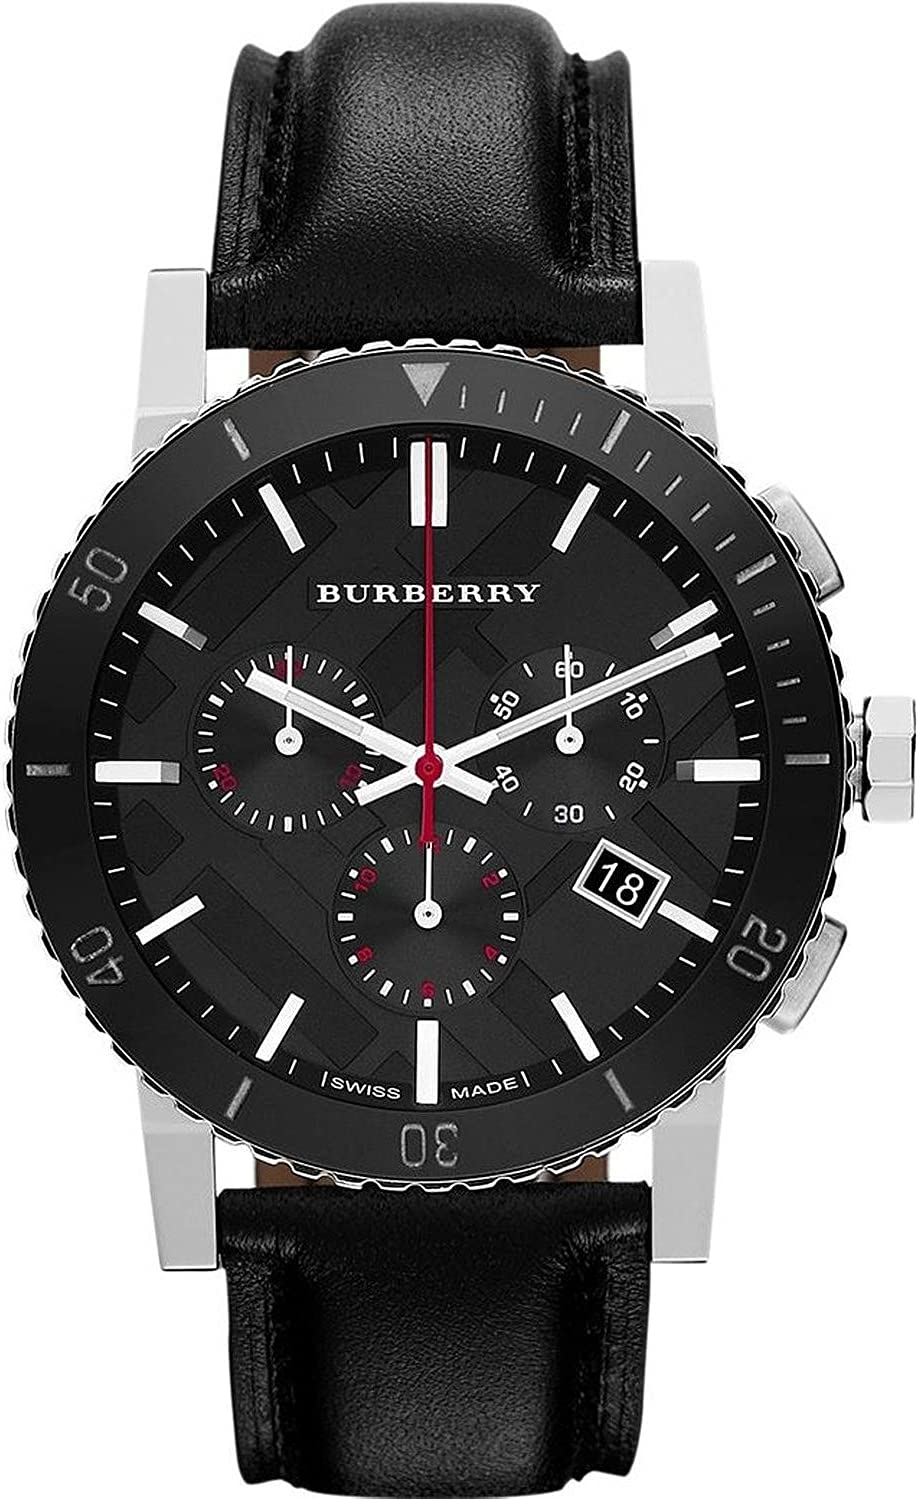 Burberry Stainless Steel Mens Watch BU9382